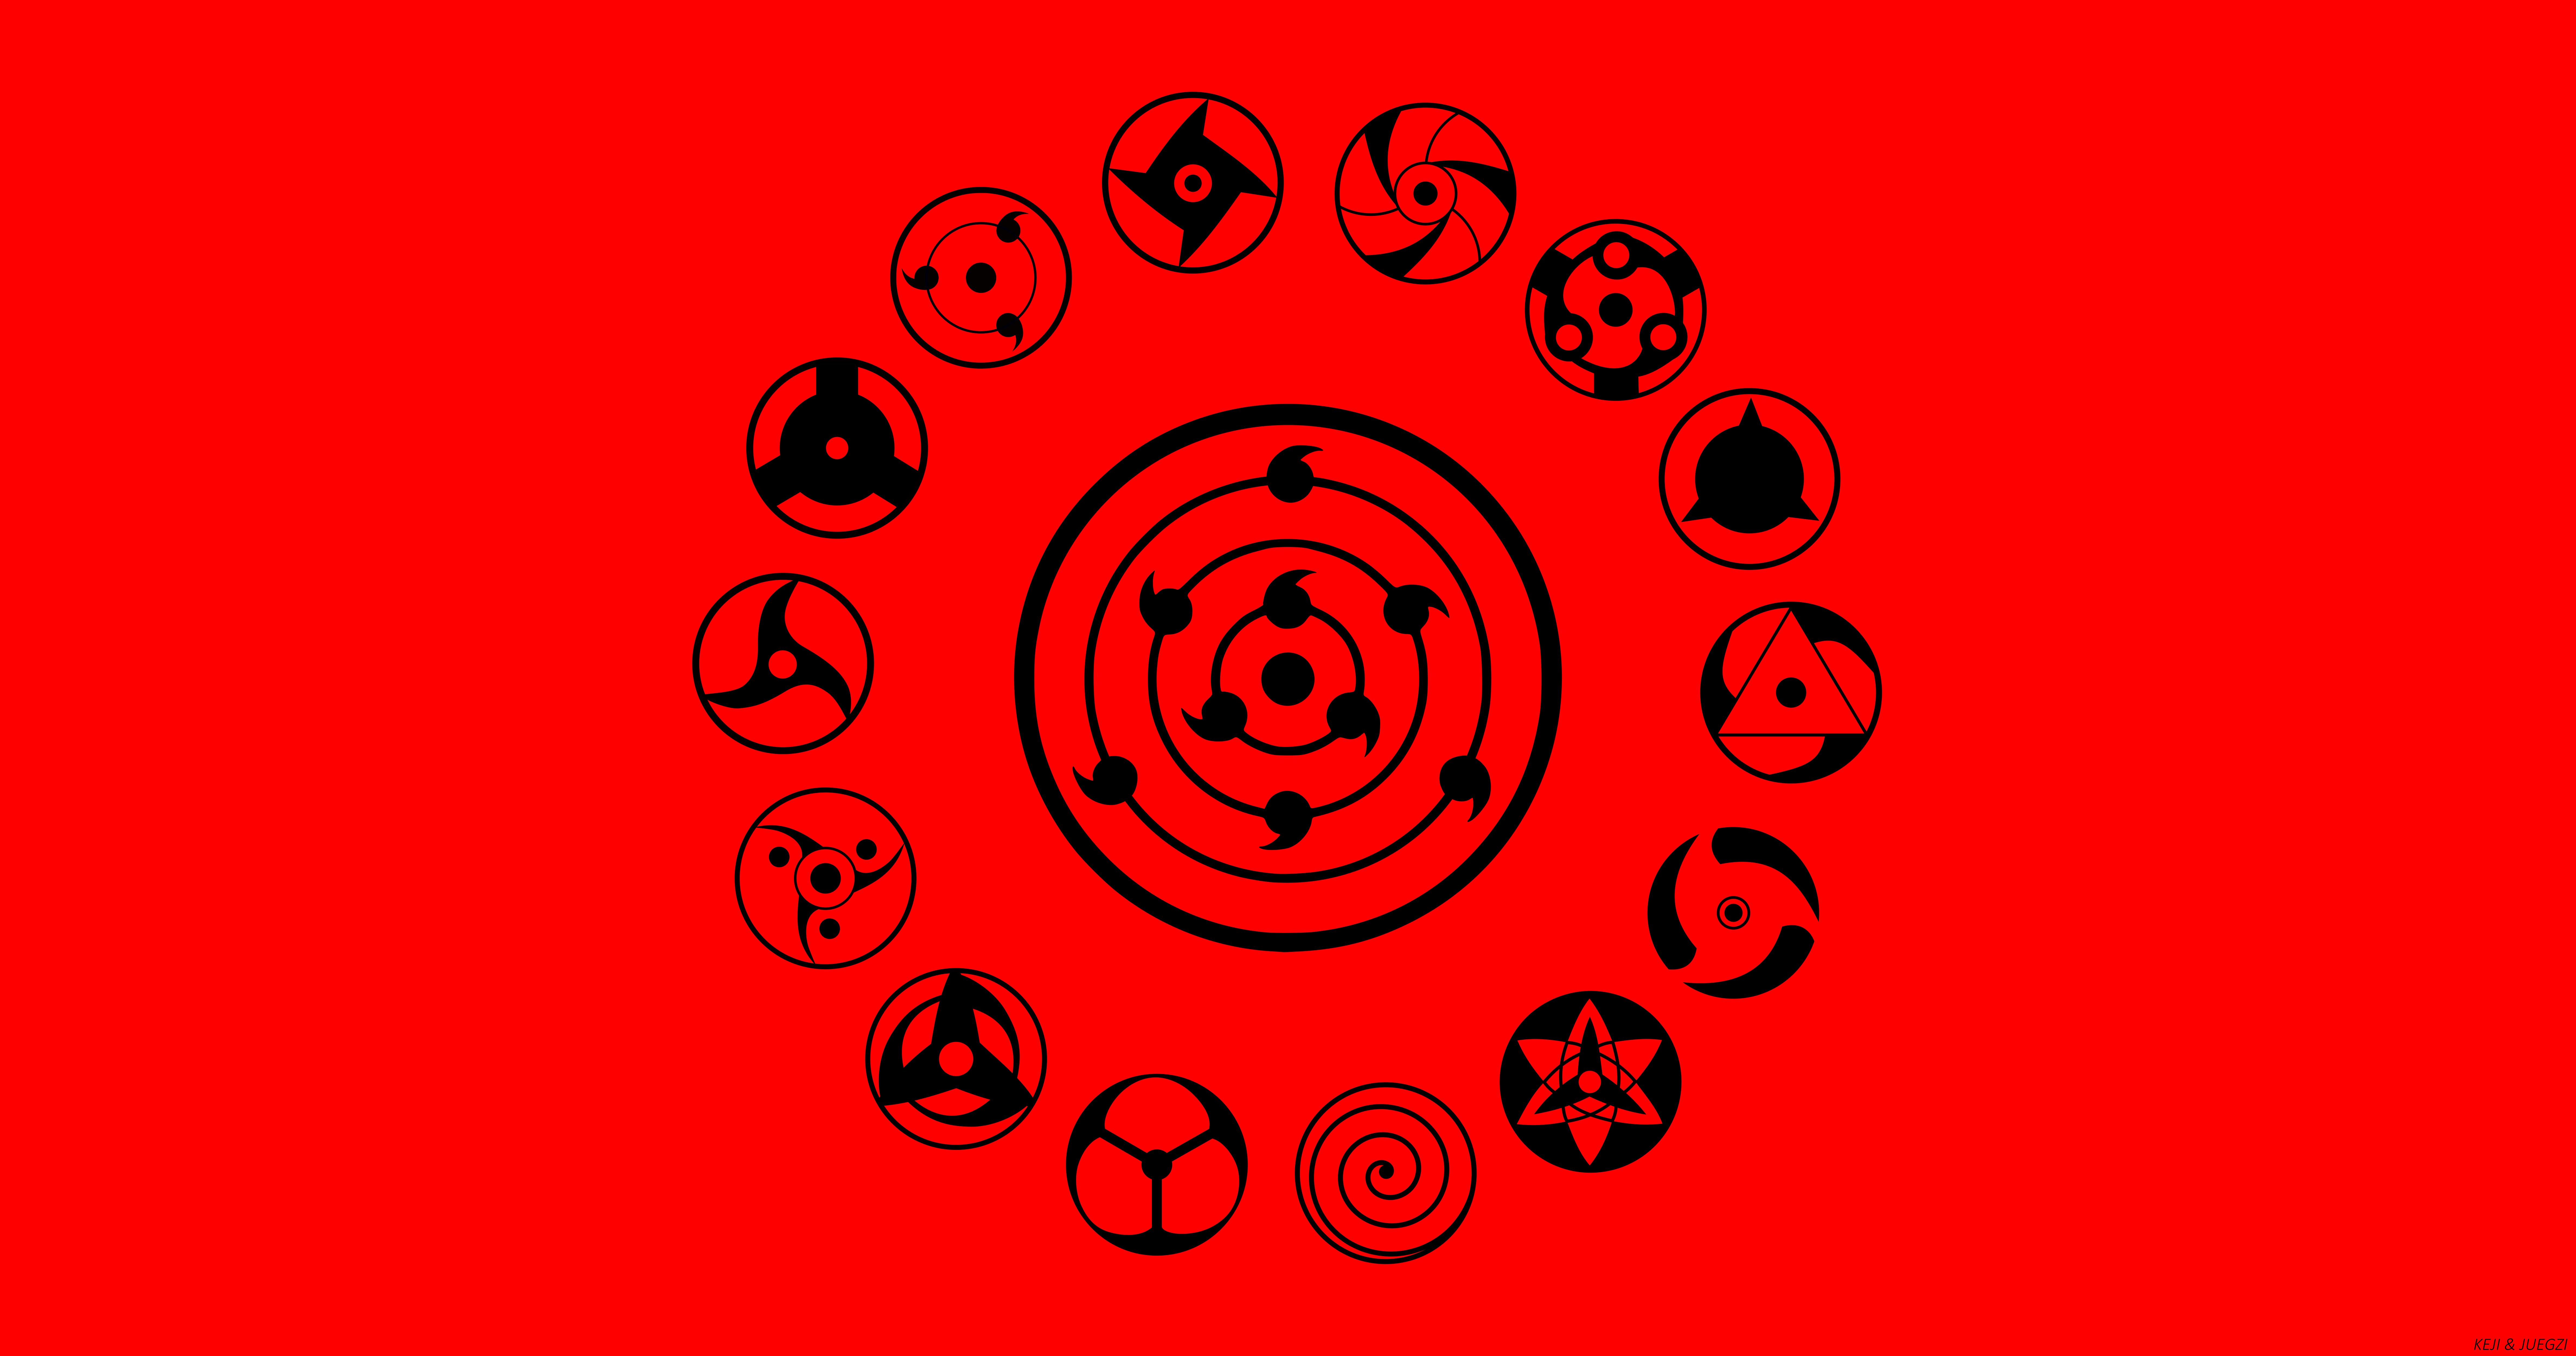 9500x5000 5041880 Red, Mangekyō Sharingan, Boruto (Anime), Sharingan ...